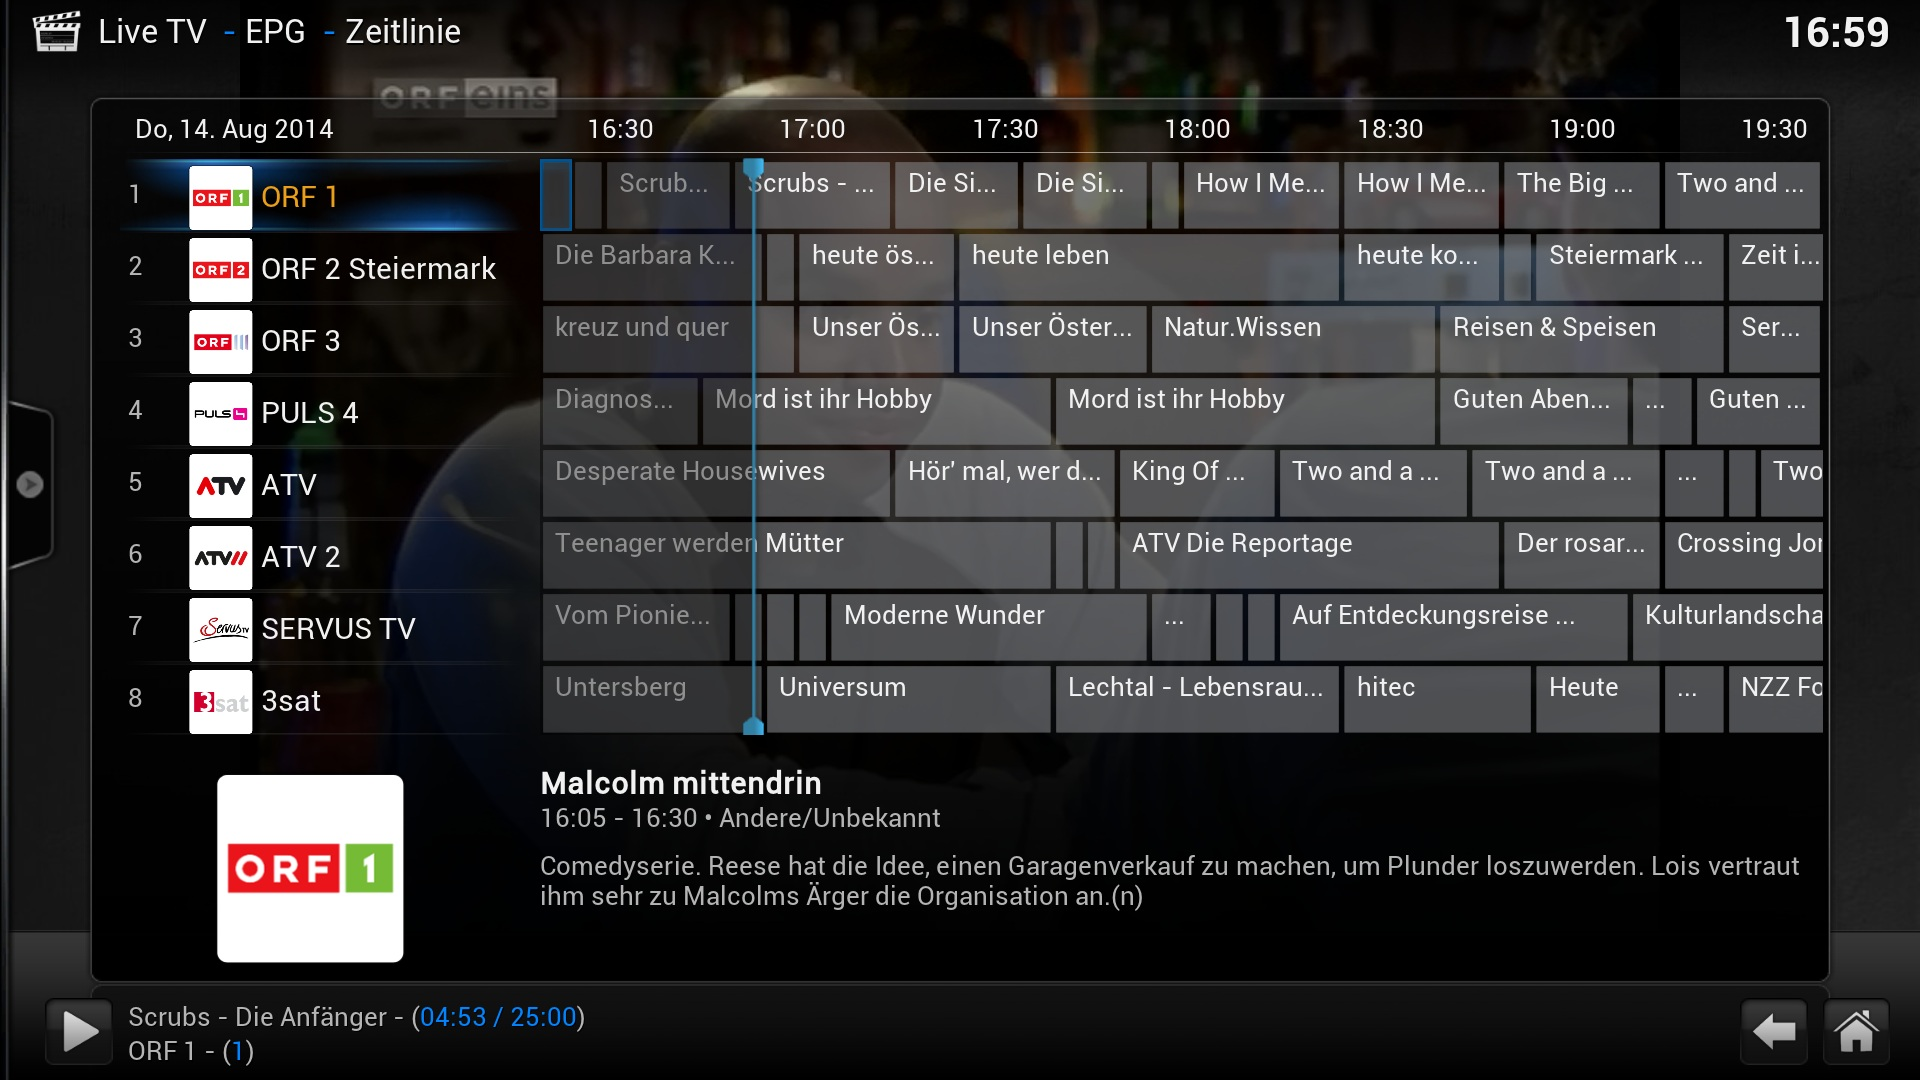 A1 TV XBMC Live TV Rasperry & Windows  - Screen 2.jpg